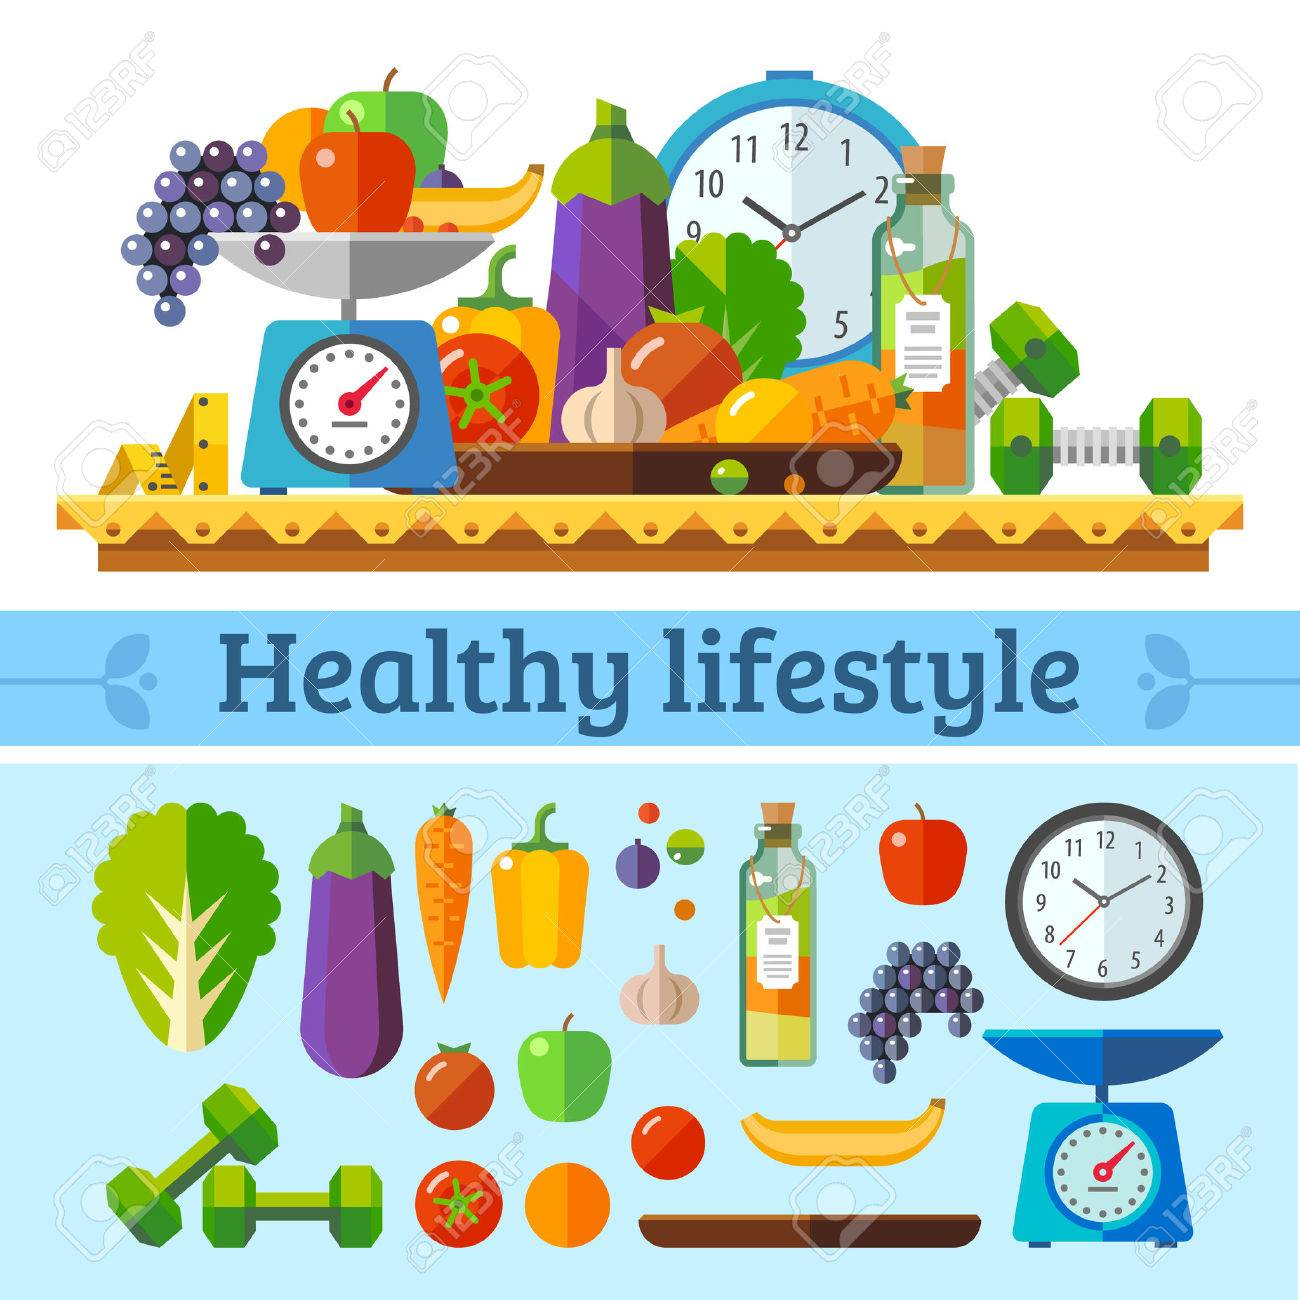 Healthy lifestyle a healthy diet and daily routine. Vector flat illustration. - 40502697